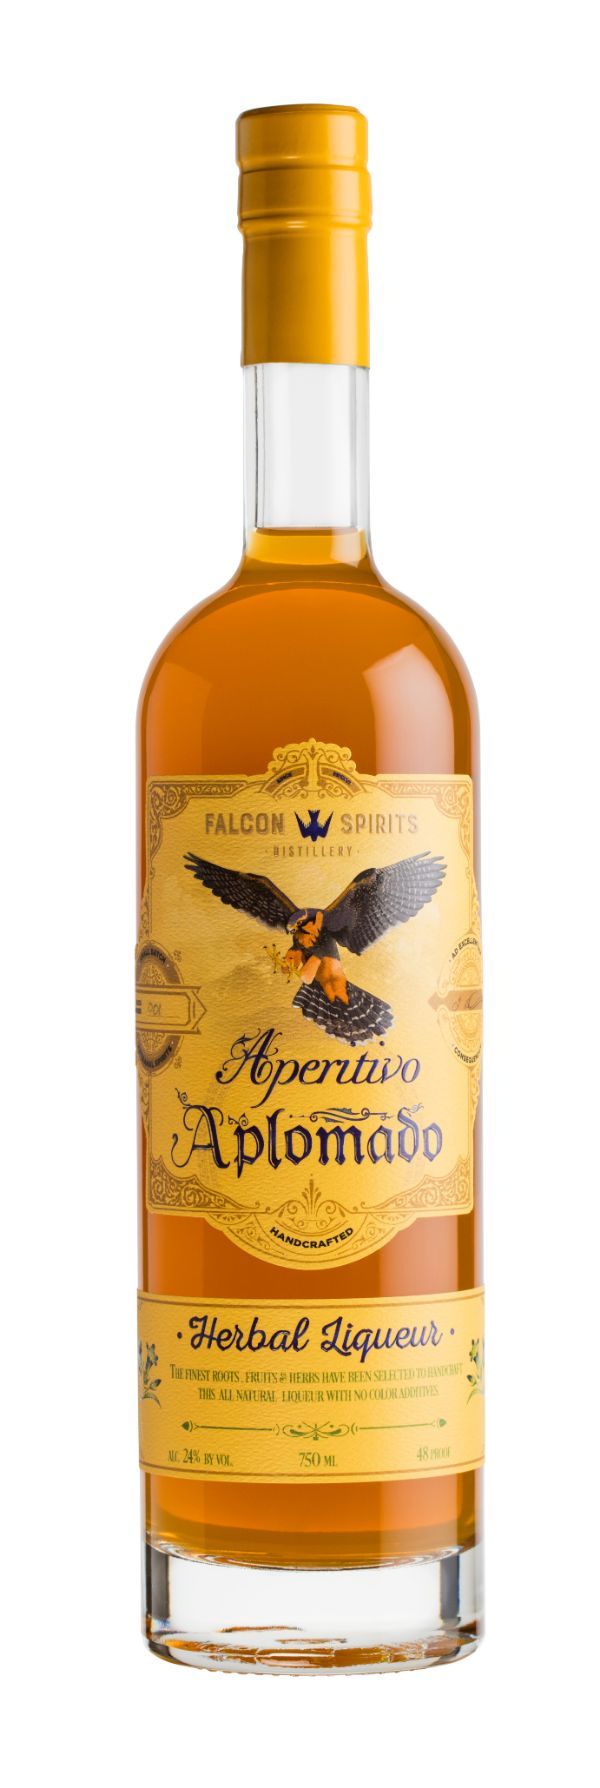 Aperitivo Aplomado Herbal Liqueur